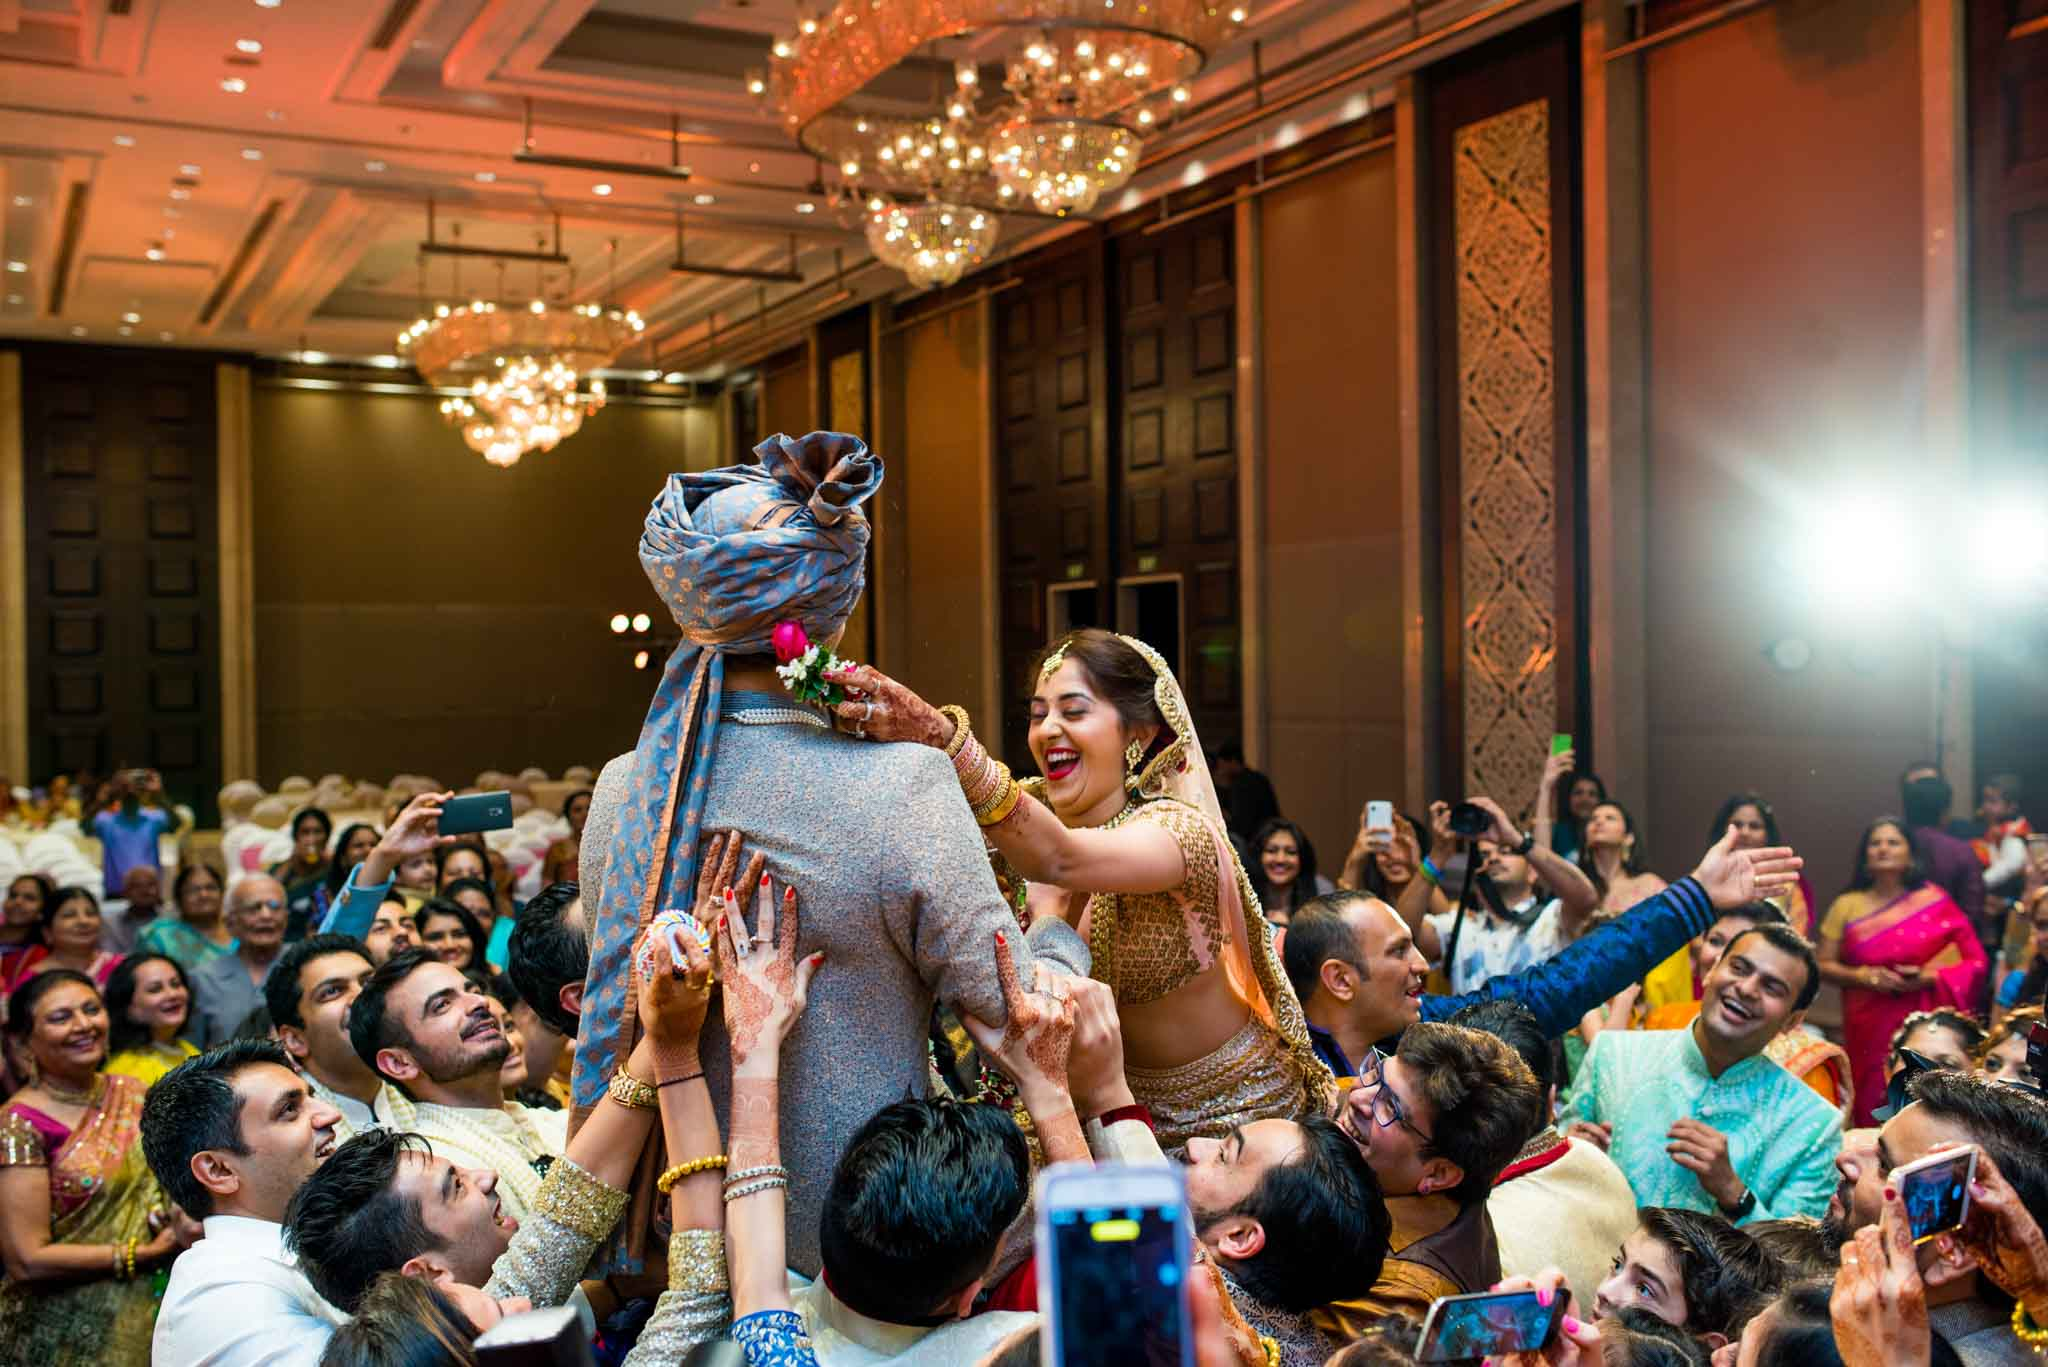 StRegis-Palladium-Mumbai-Candid-Wedding-Photography-29